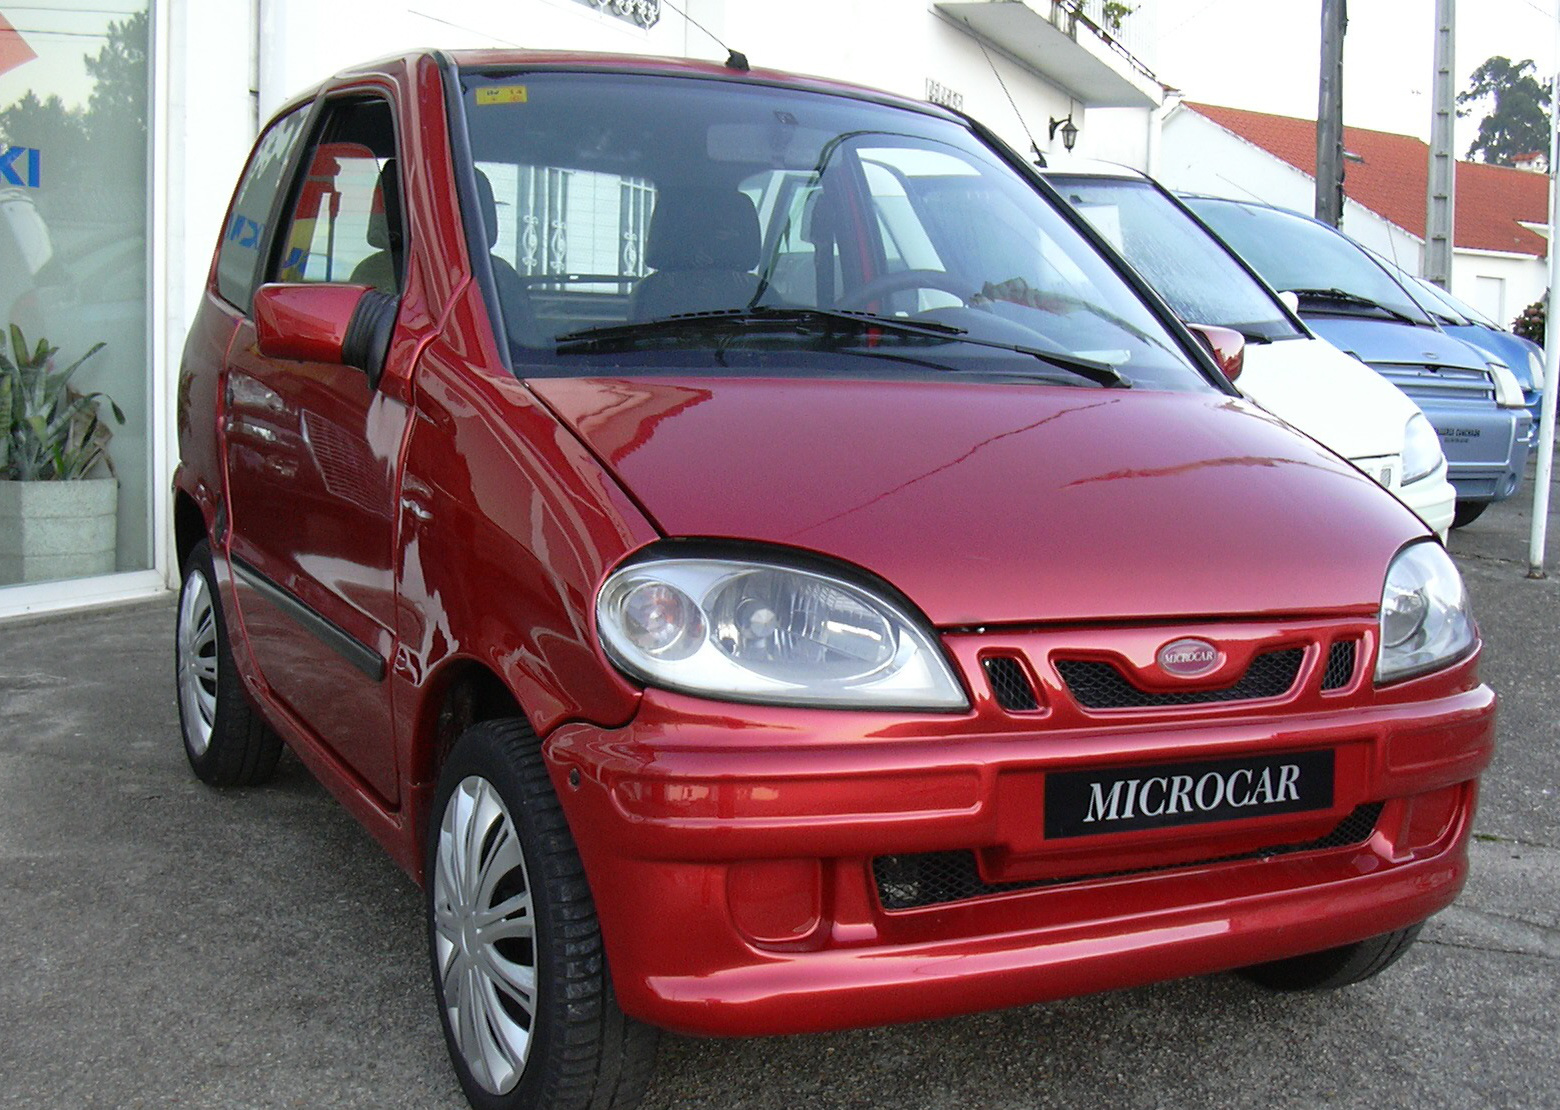 microcar Virgo Rojo (5)